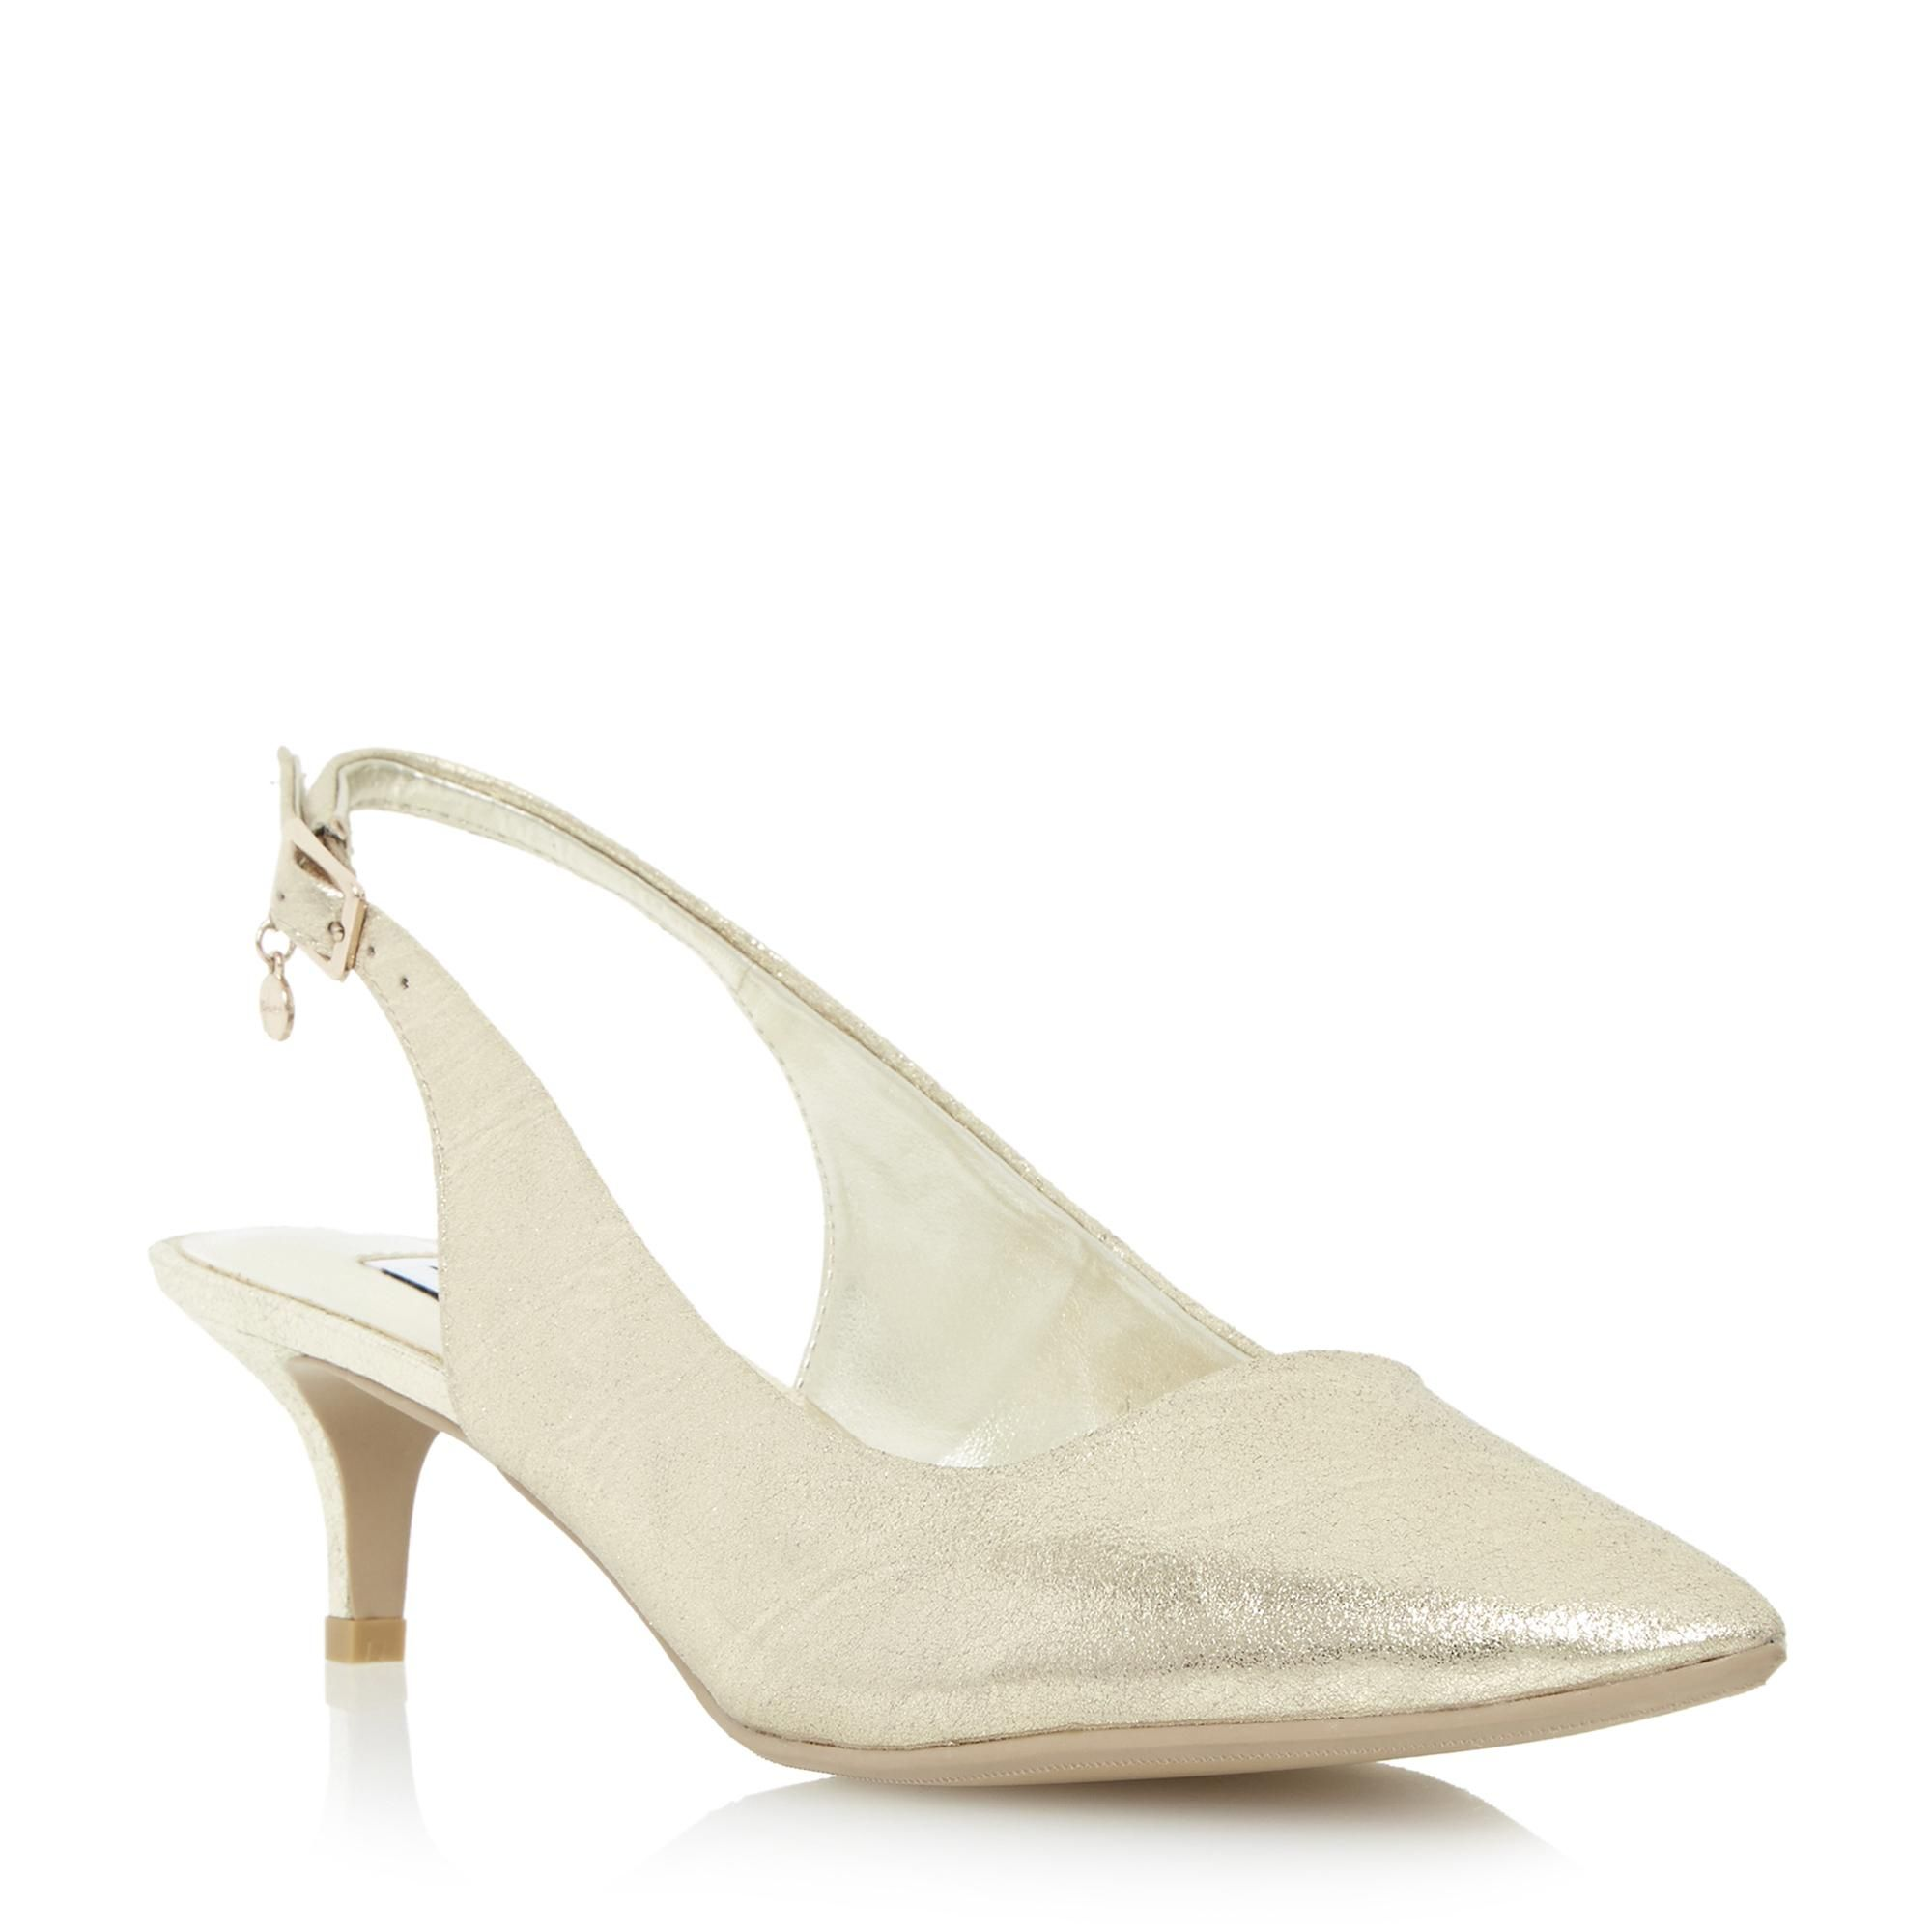 Dune Ladies Cathryne Kitten Heel Slingback Court Shoe Gold Dune Shoes Online 30 In Sale Size 6 Only Though Court Shoes Dune Shoes Kitten Heels